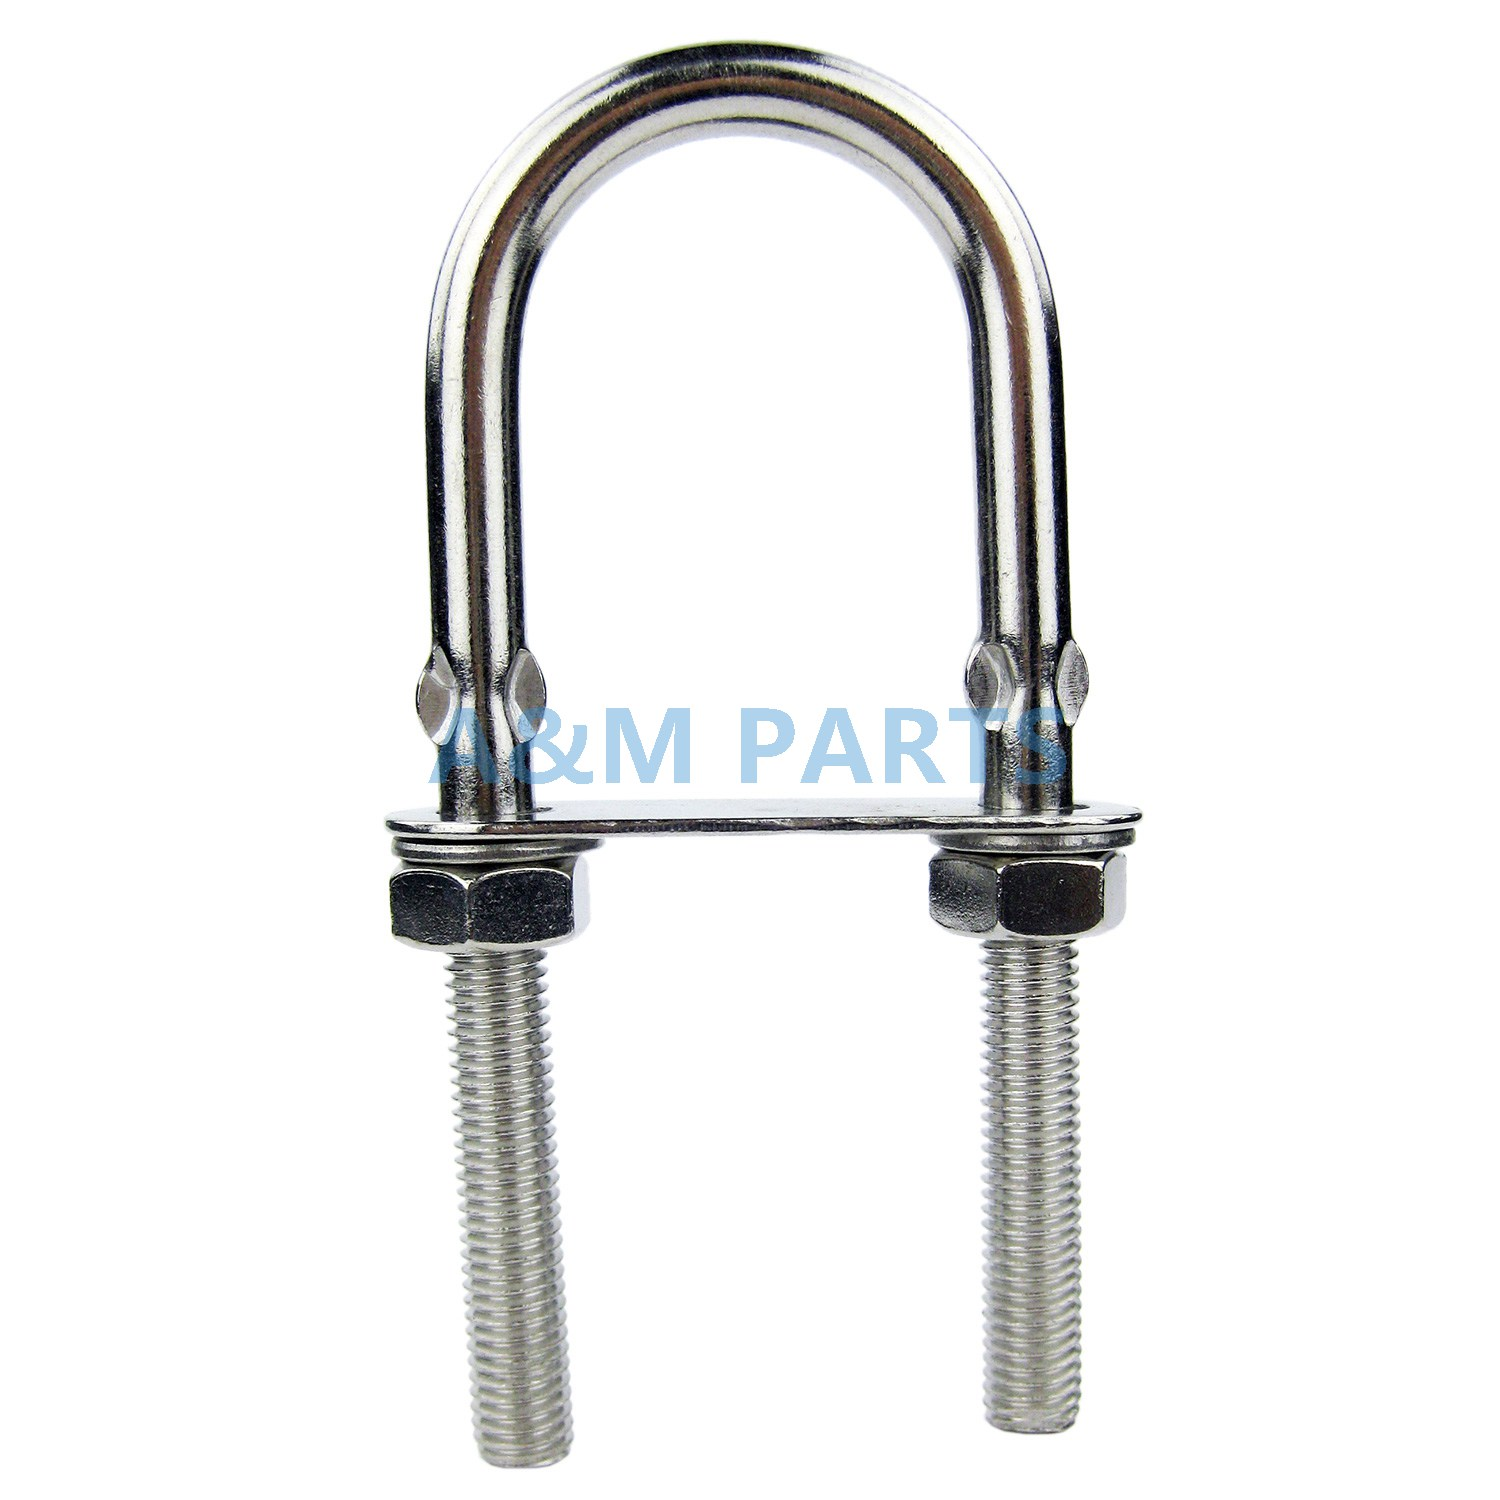 M10 Marine Stainless U Bolt + Plate + Nuts Bow / Stern Eye 10mm * 130mm (3/8)